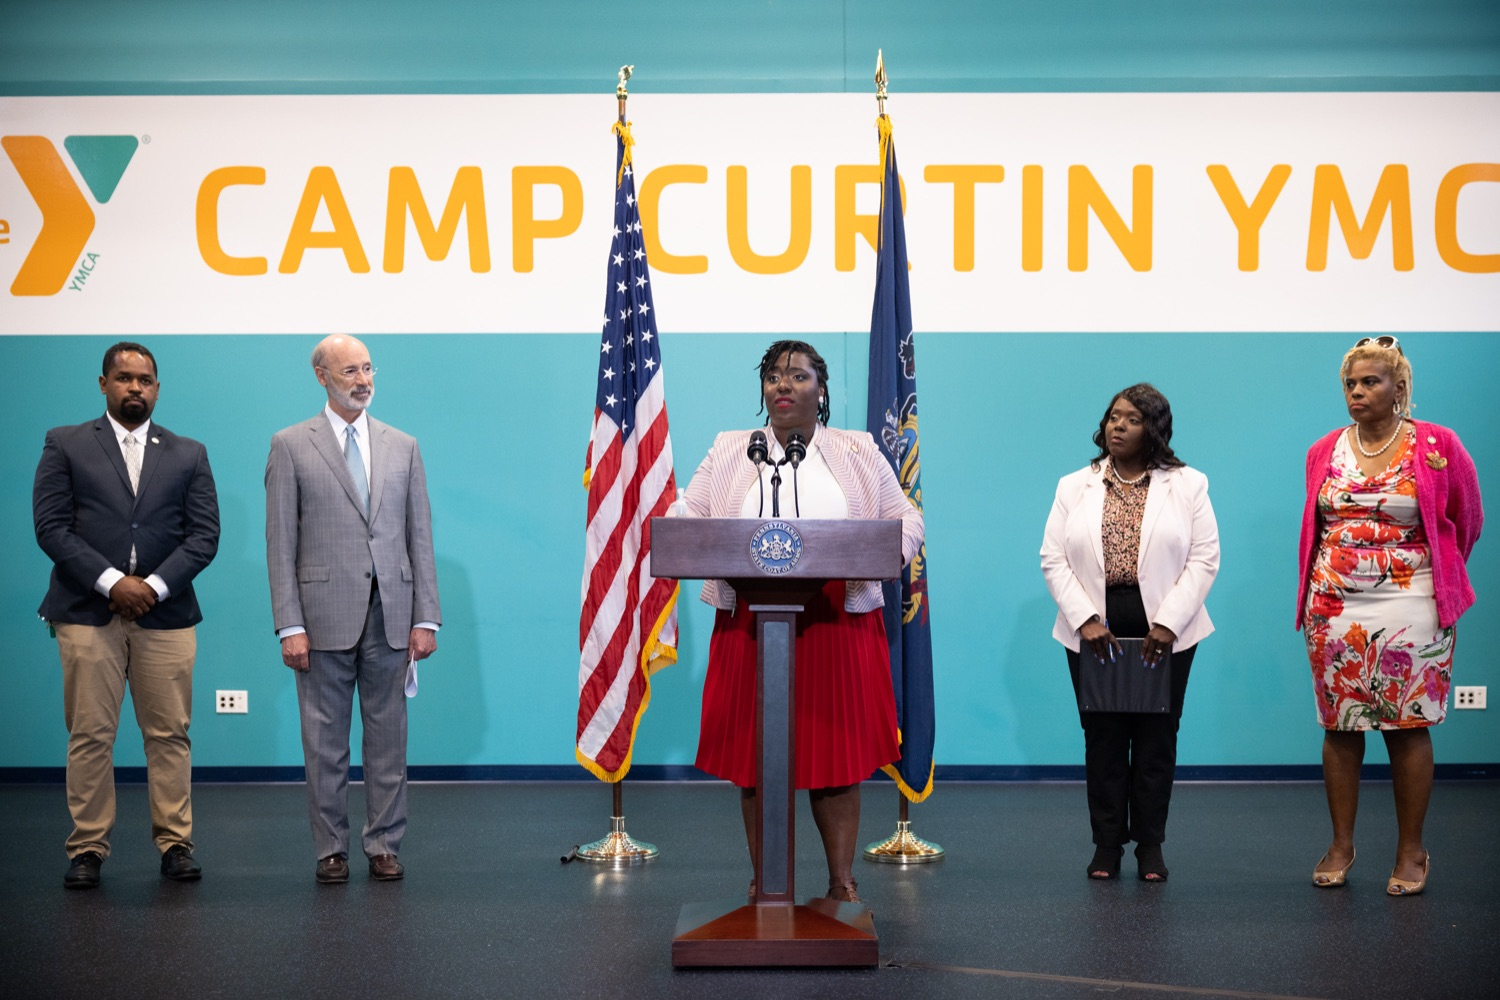 State Rep. Joanna McClinton, House Democratic Caucus Leader, speaks about voting rights during a press conference at the Camp Curtin YMCA in Harrisburg on Wednesday, June 9, 2021. She is flanked by, from left, state Sen. Sharif Street; Gov. Tom Wolf; acting Secretary of State VeronicaDegraffenreid and state Rep. Margo Davidson. Street and Davidson are the Democratic chairs of their respective chambers' State Government committees.  (Source: Pa.gov)